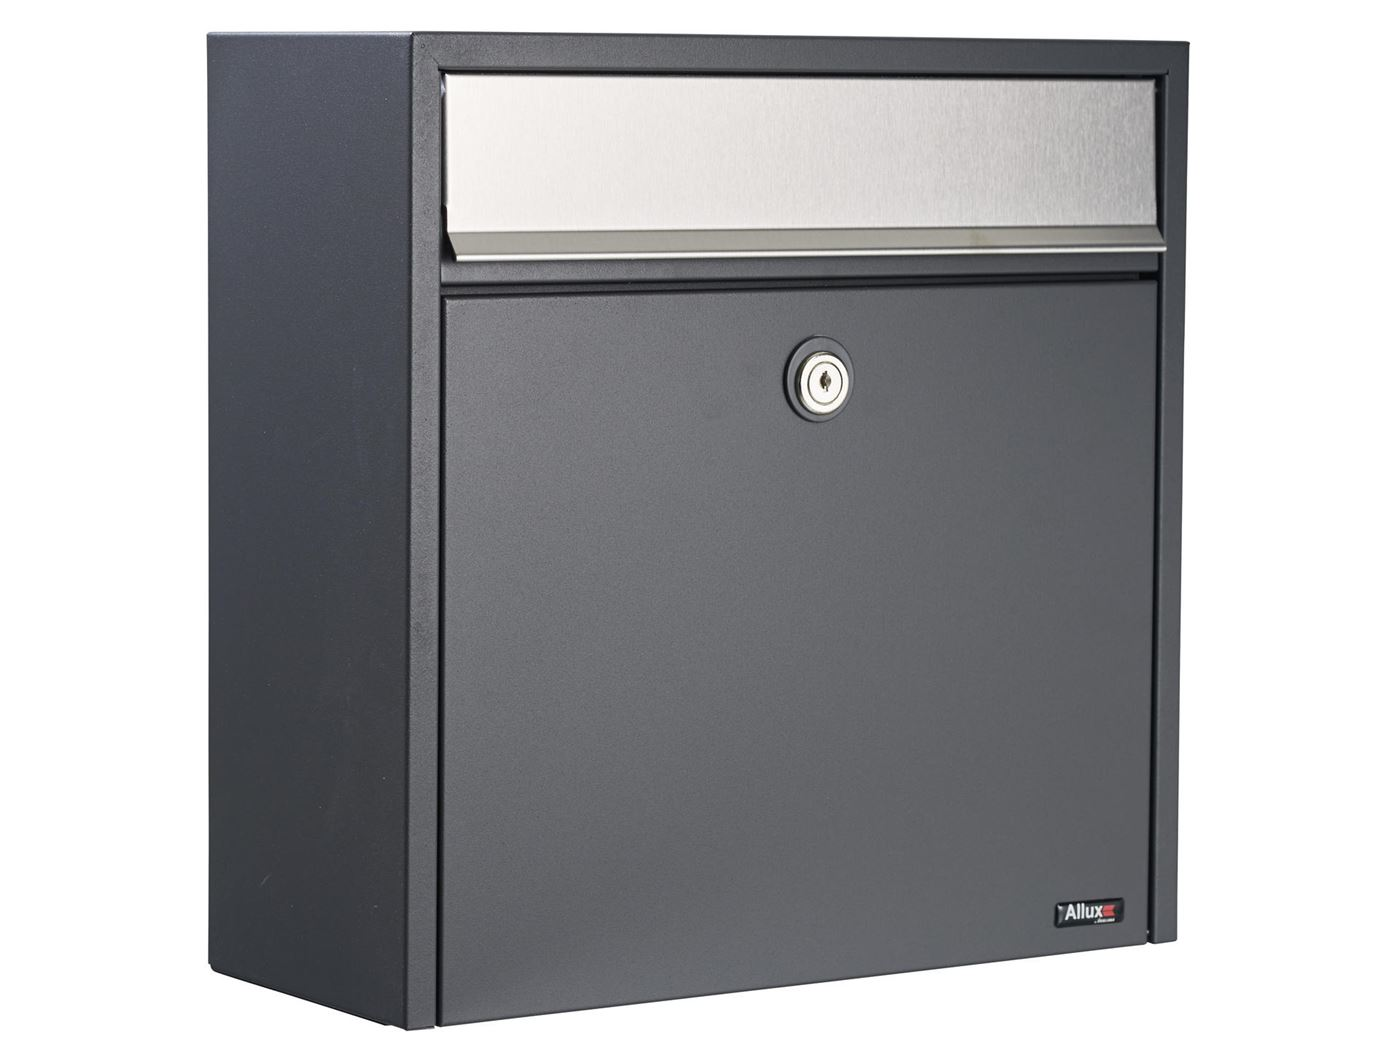 allux 250 anthracite with stainless steel flap, euro lock